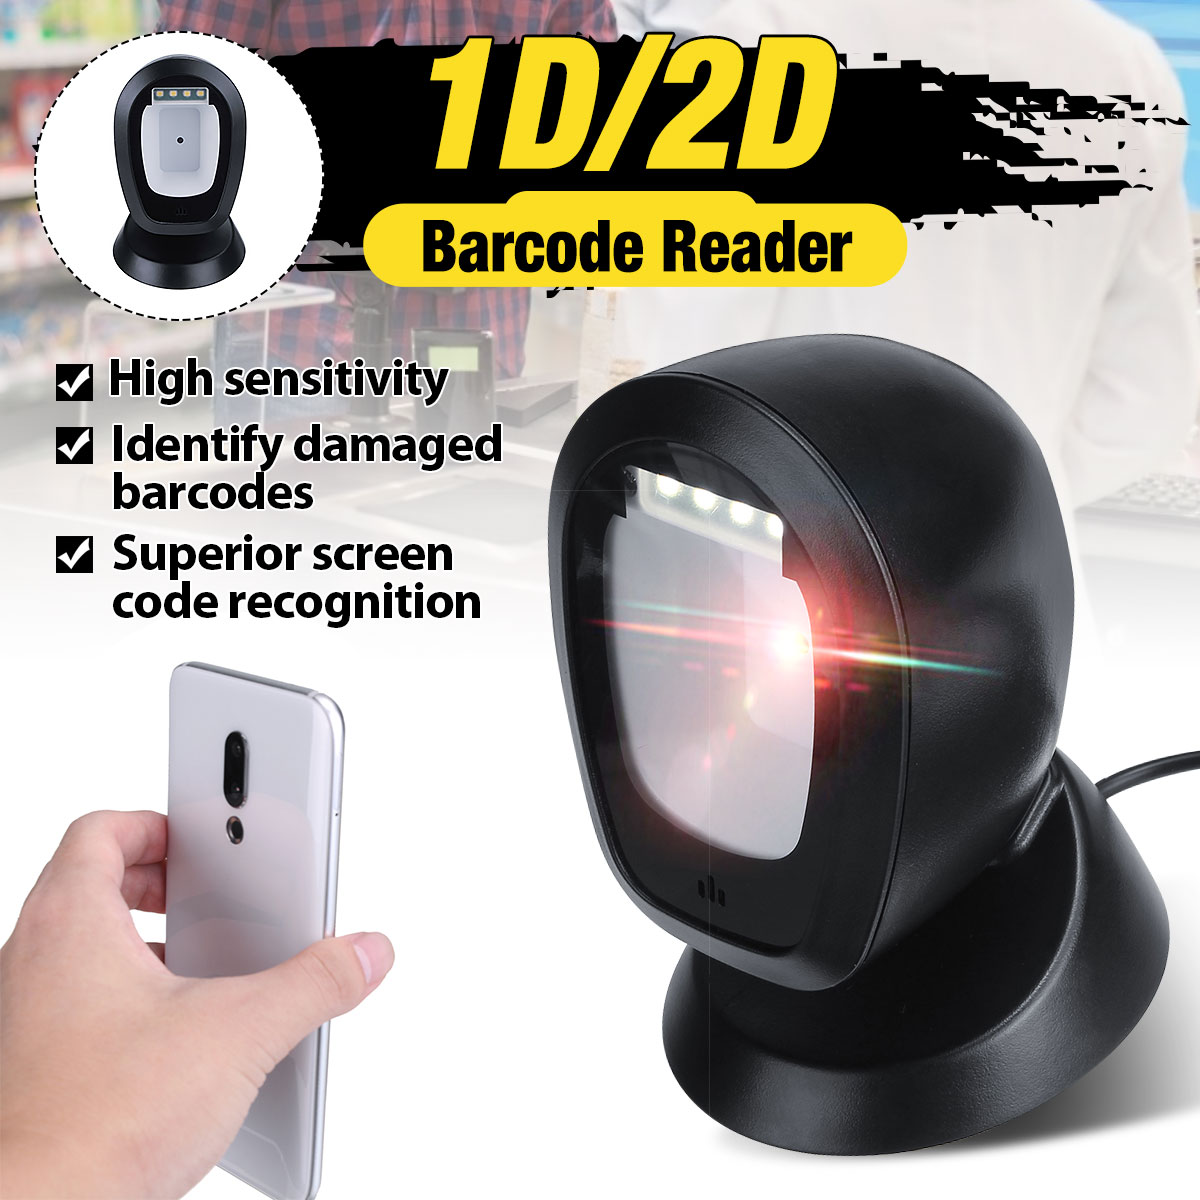 Barcode Scanner Platform Usb-Interface Automatic Handsfree 2D 1D with 360-Degrees Rorating title=